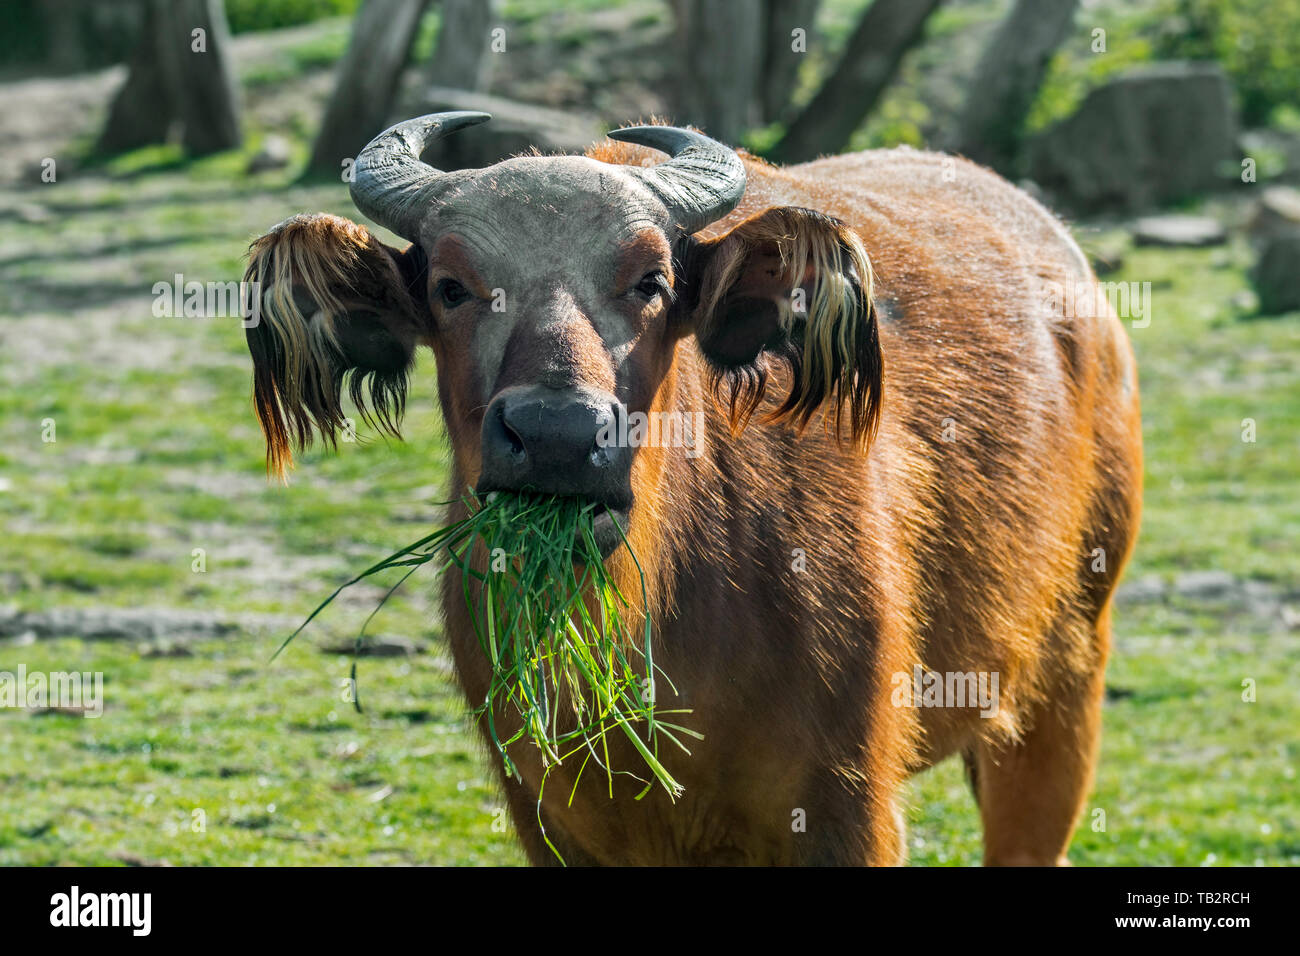 African forest buffalo / dwarf buffalo / Congo buffalo (Syncerus caffer nanus) native to the rainforests of central and western Africa - Stock Image